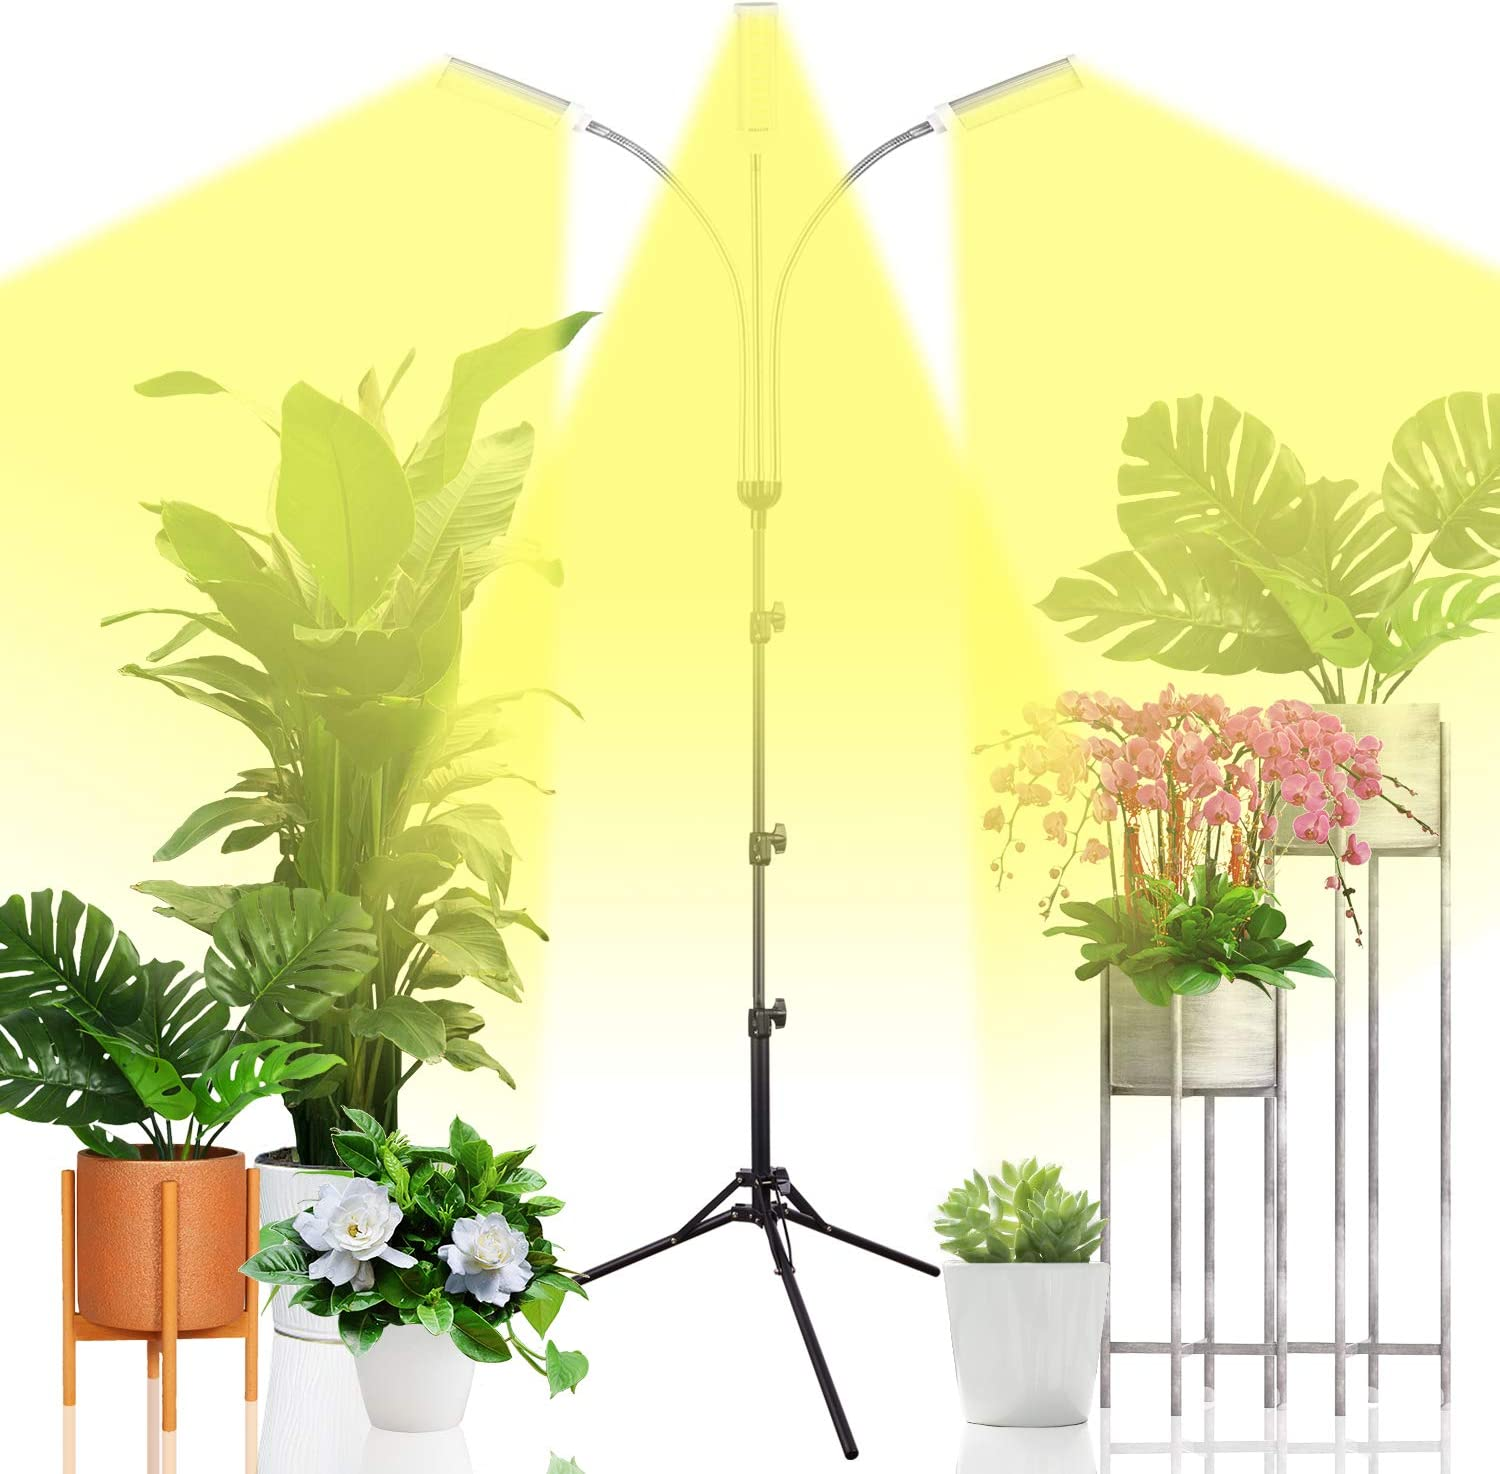 Emiral Plant Grow Light for Indoor Plants, Full Spectrum Led Grow Light with Stand, Three-Heads Floor Grow Lamp, Tripod Stand Adjustable 15-47 in,3/9/12H Timer & 3 Modes